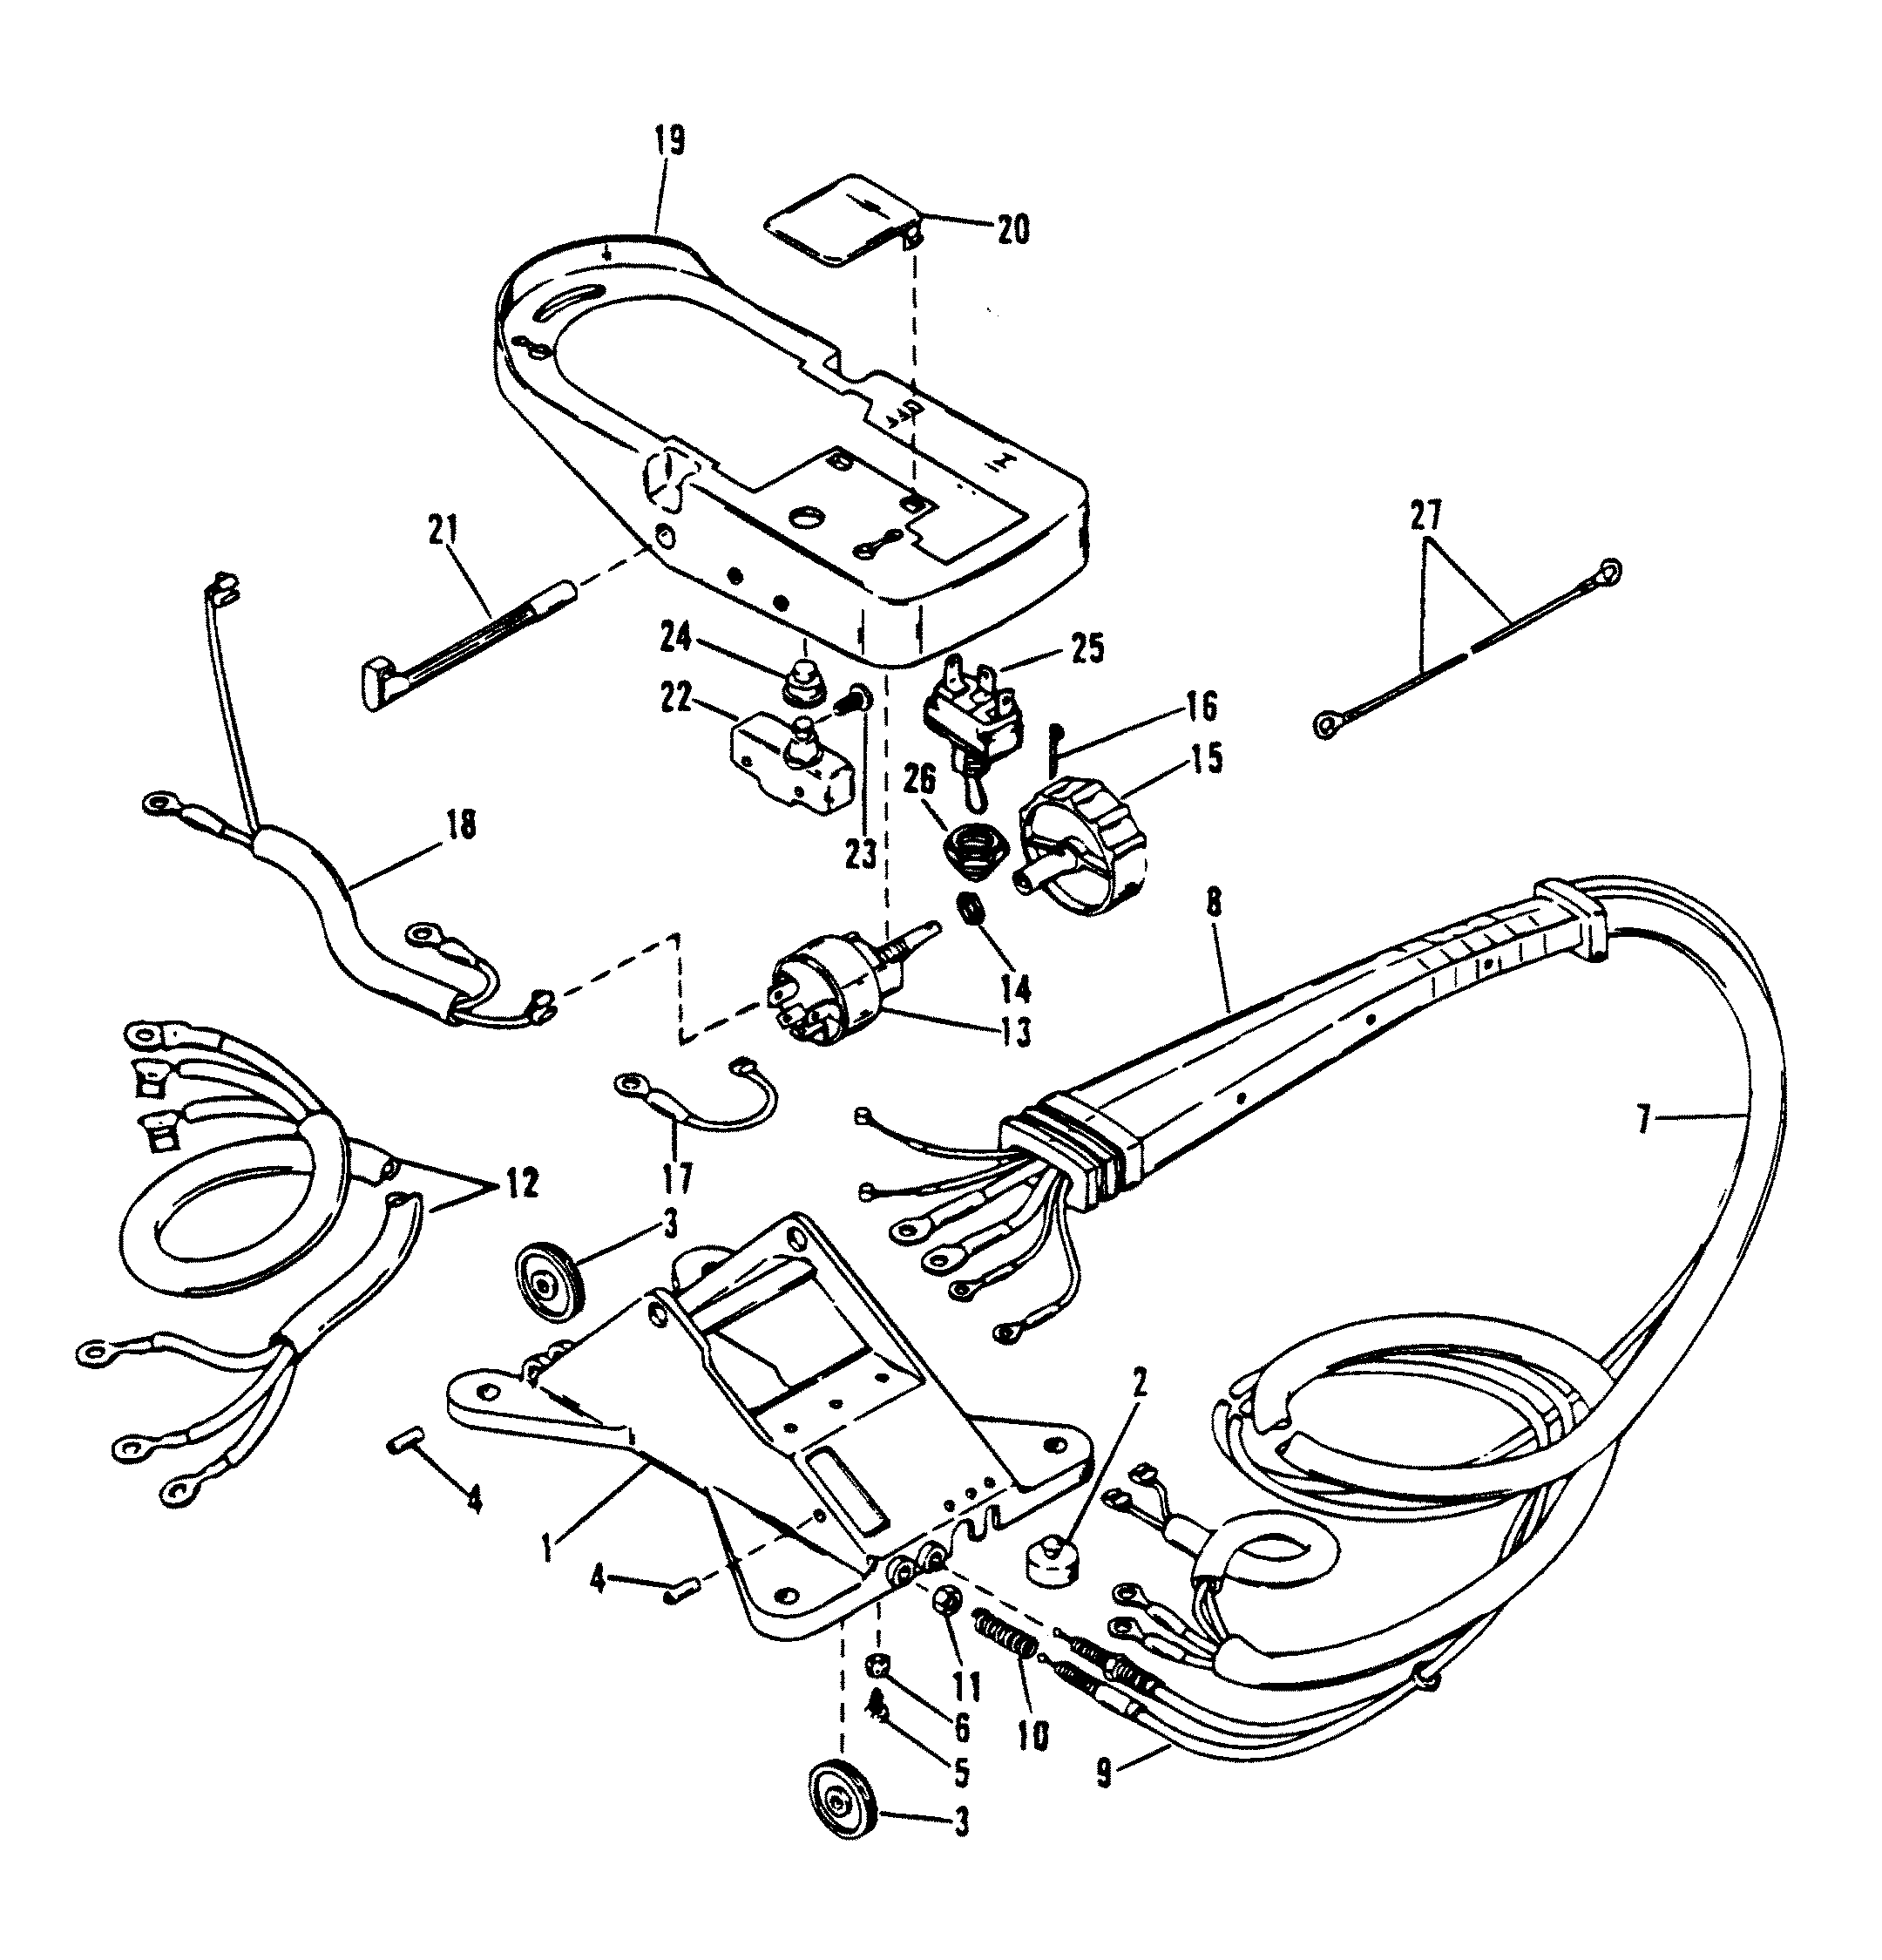 Mercury Outboard Motor Diagram